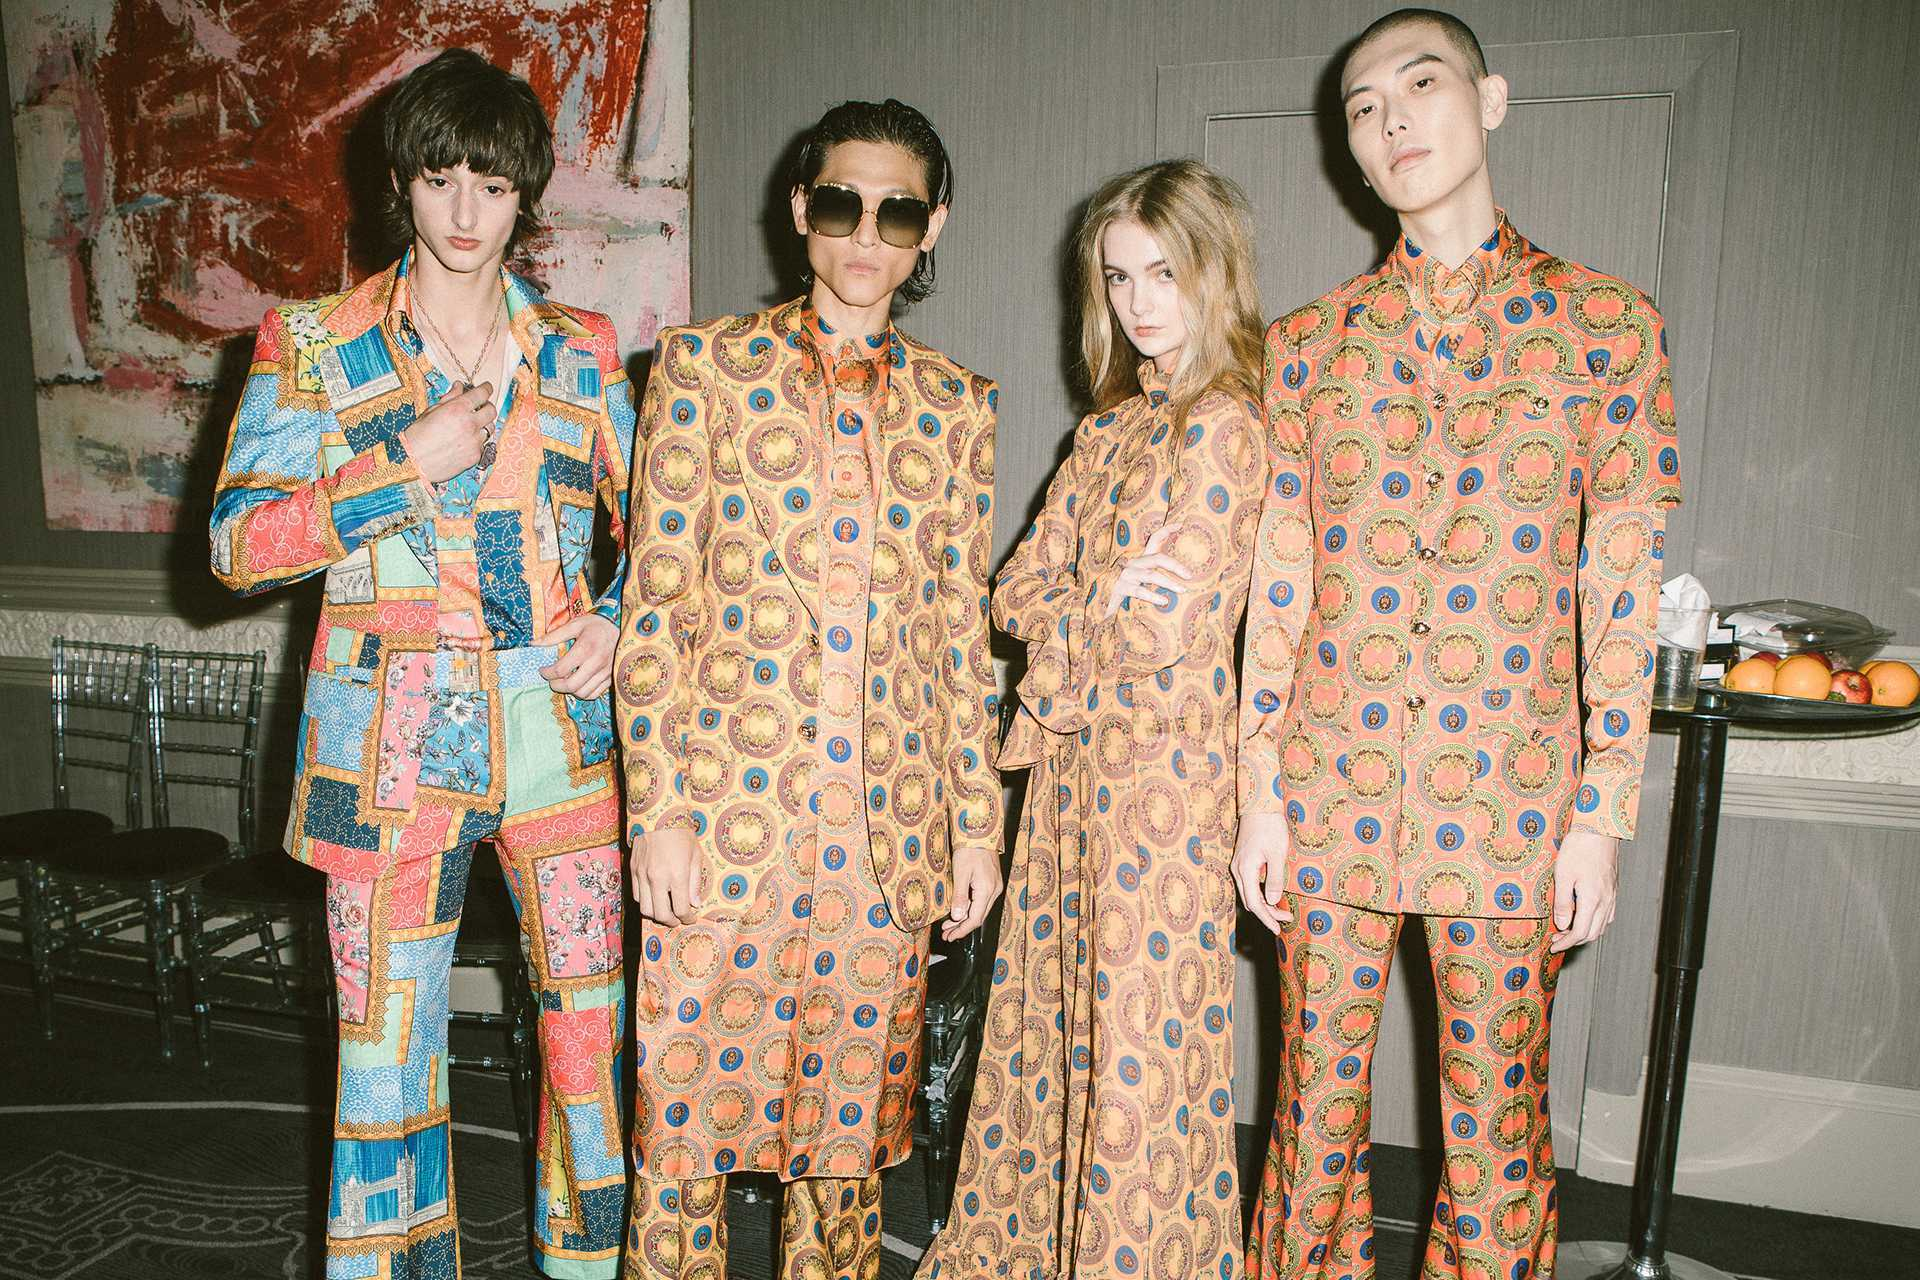 Models for Helen Anthony at London Fashion Week 2021